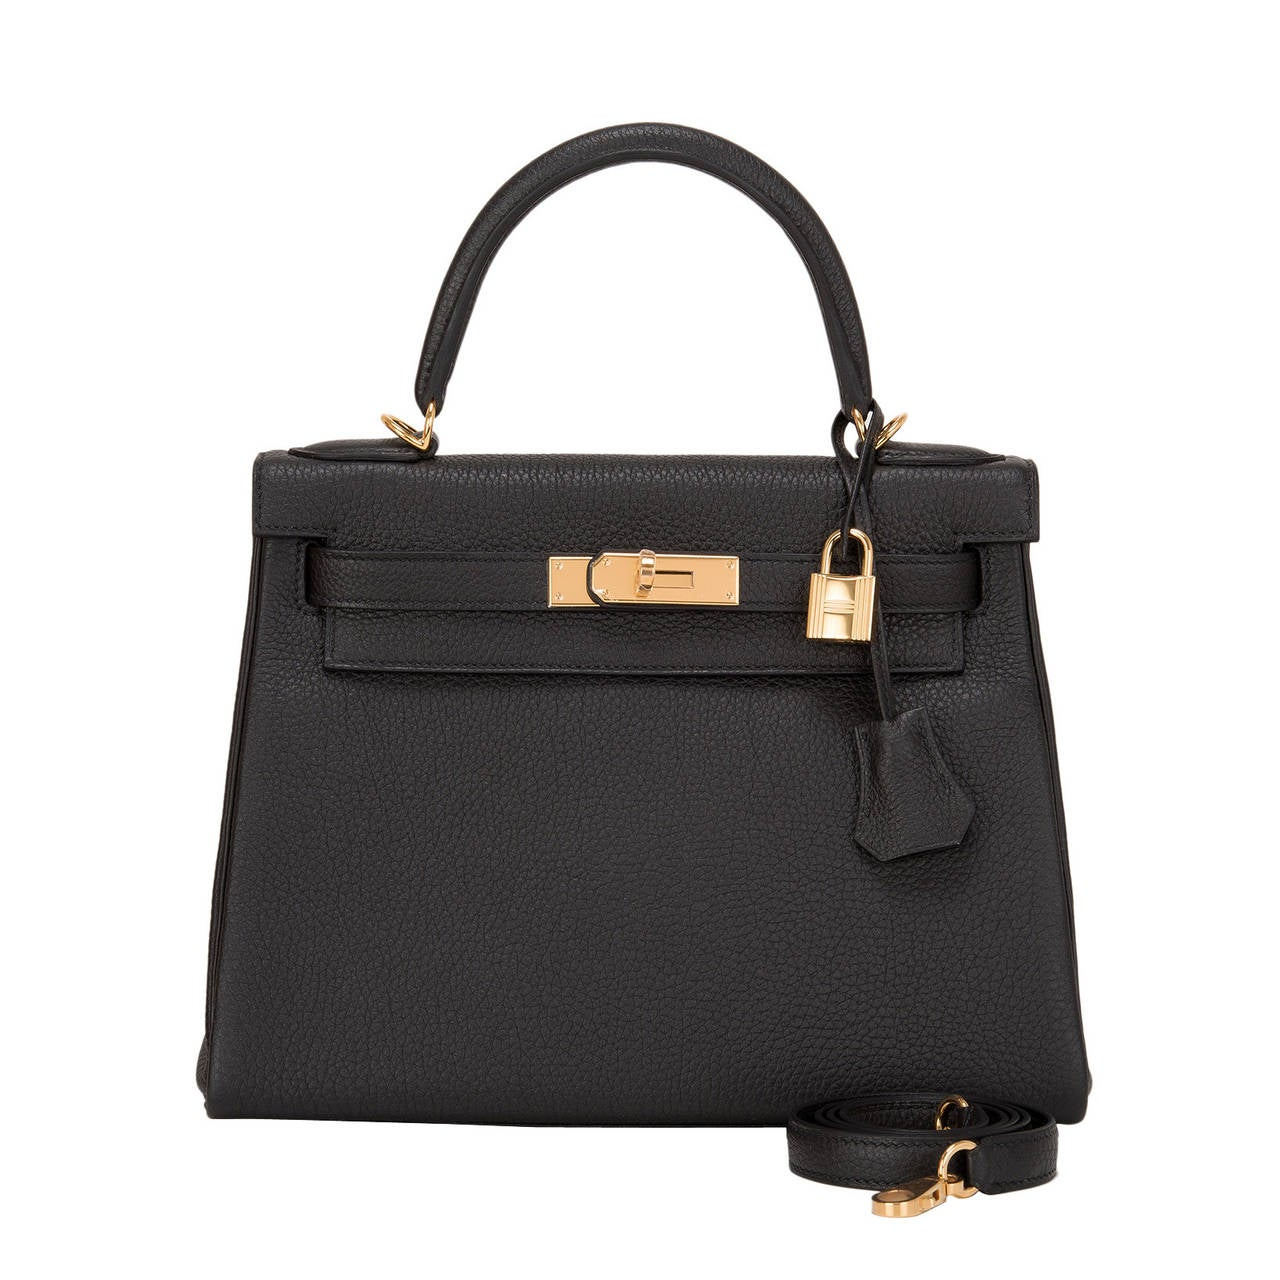 replica hermes birkin bag - Hermes Black Togo Kelly 28cm Gold Hardware at 1stdibs